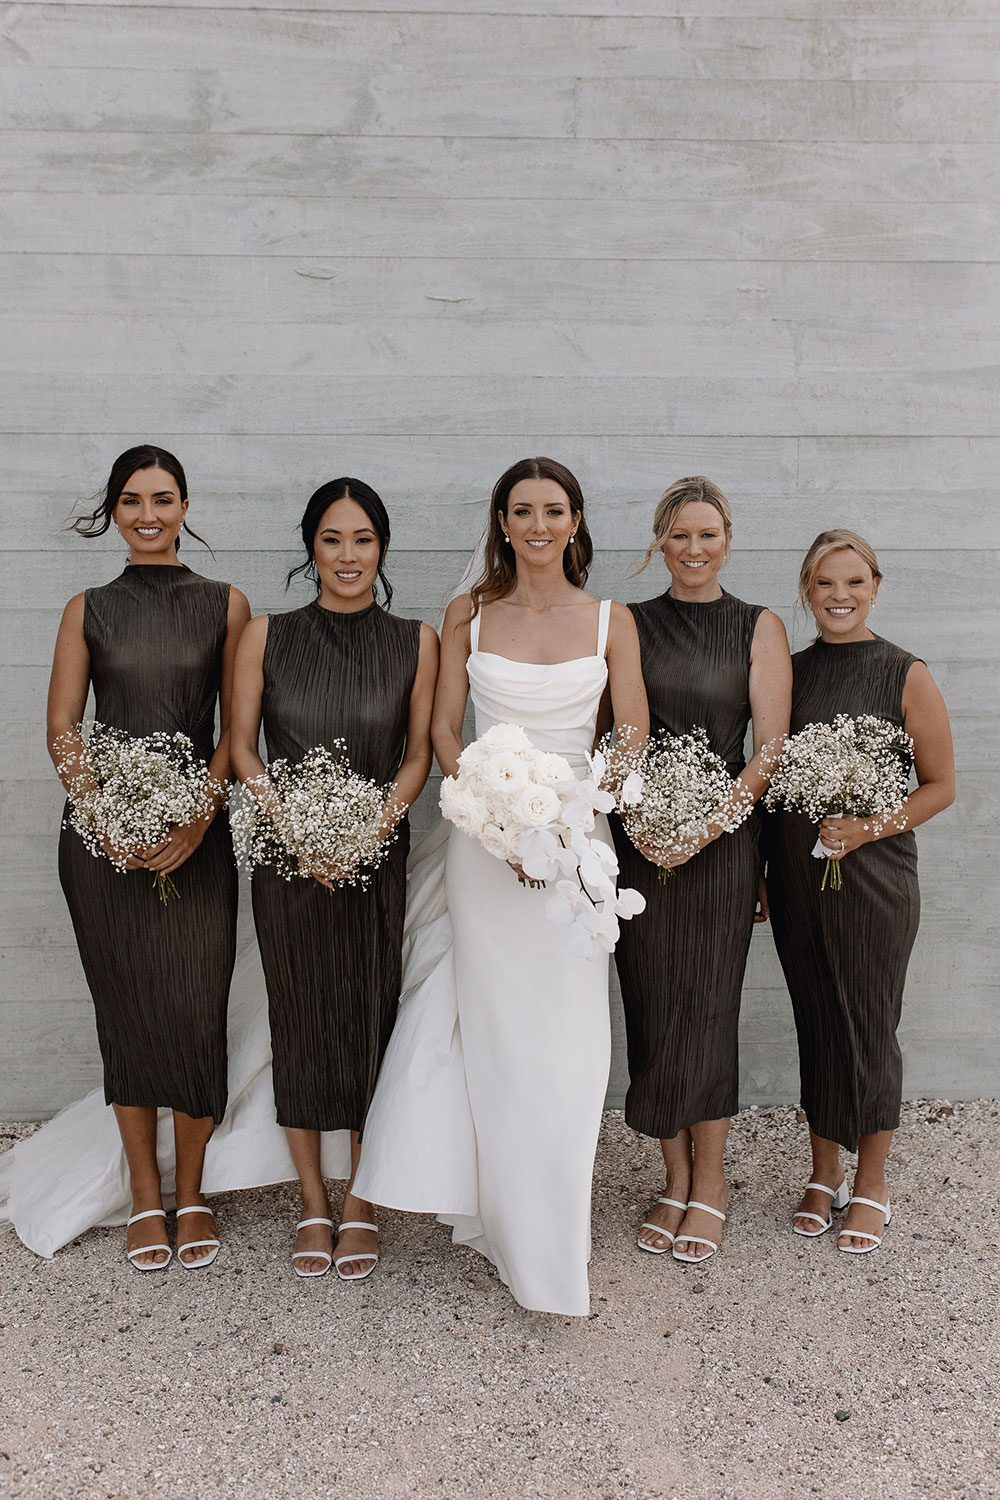 Bride wearing NZ Bespoke Bridal Gown made of silk faile with cowl bodice and detachable overskirt by Vinka Designs - with bridesmaids and bouquets